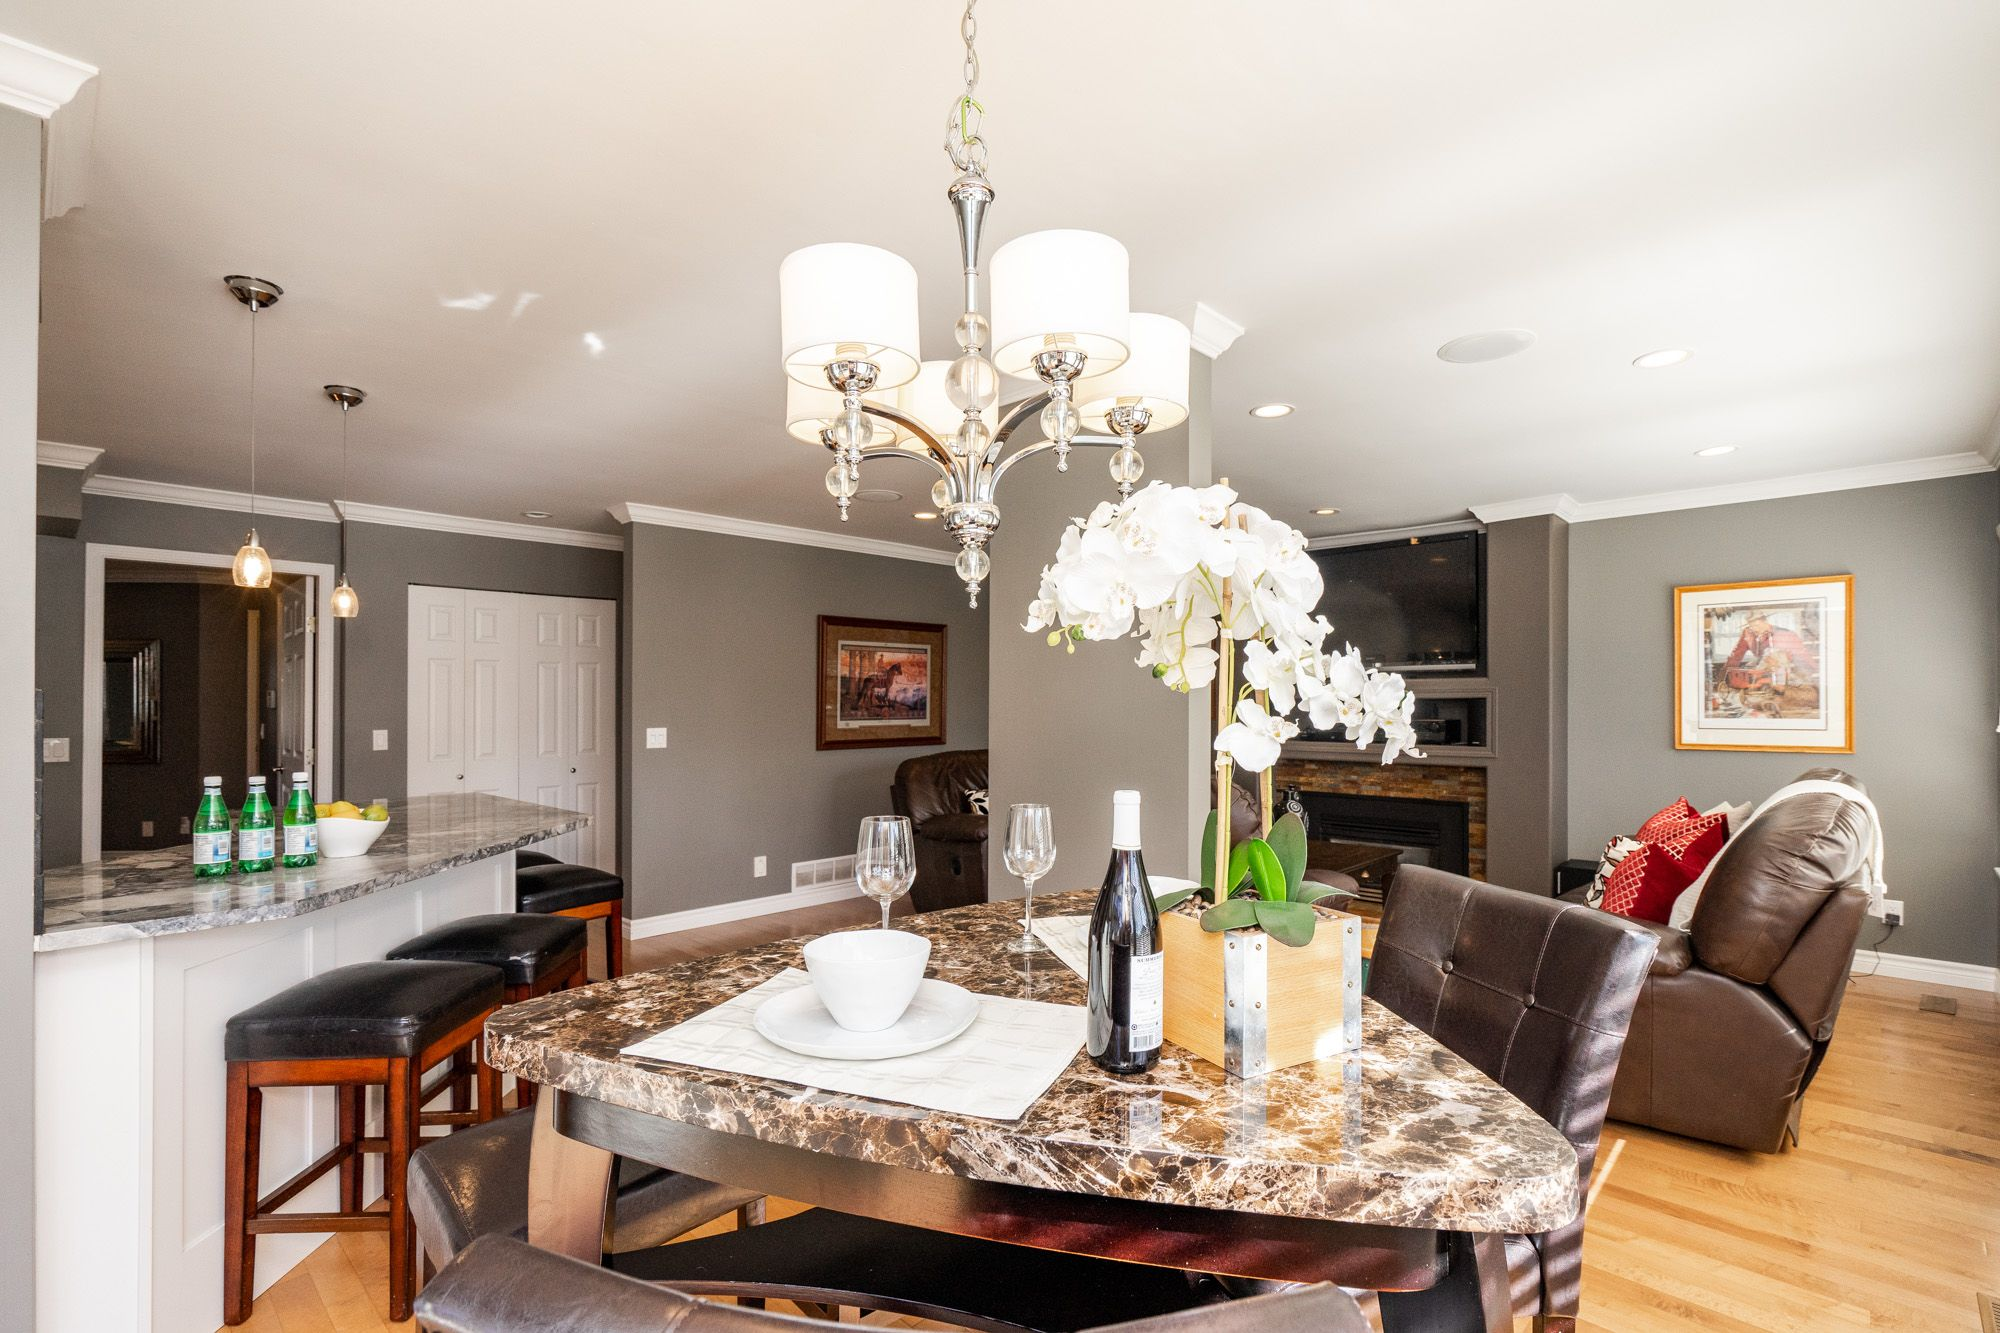 """Photo 10: Photos: 8448 213 Street in Langley: Walnut Grove House for sale in """"Forest Hills"""" : MLS®# R2259409"""